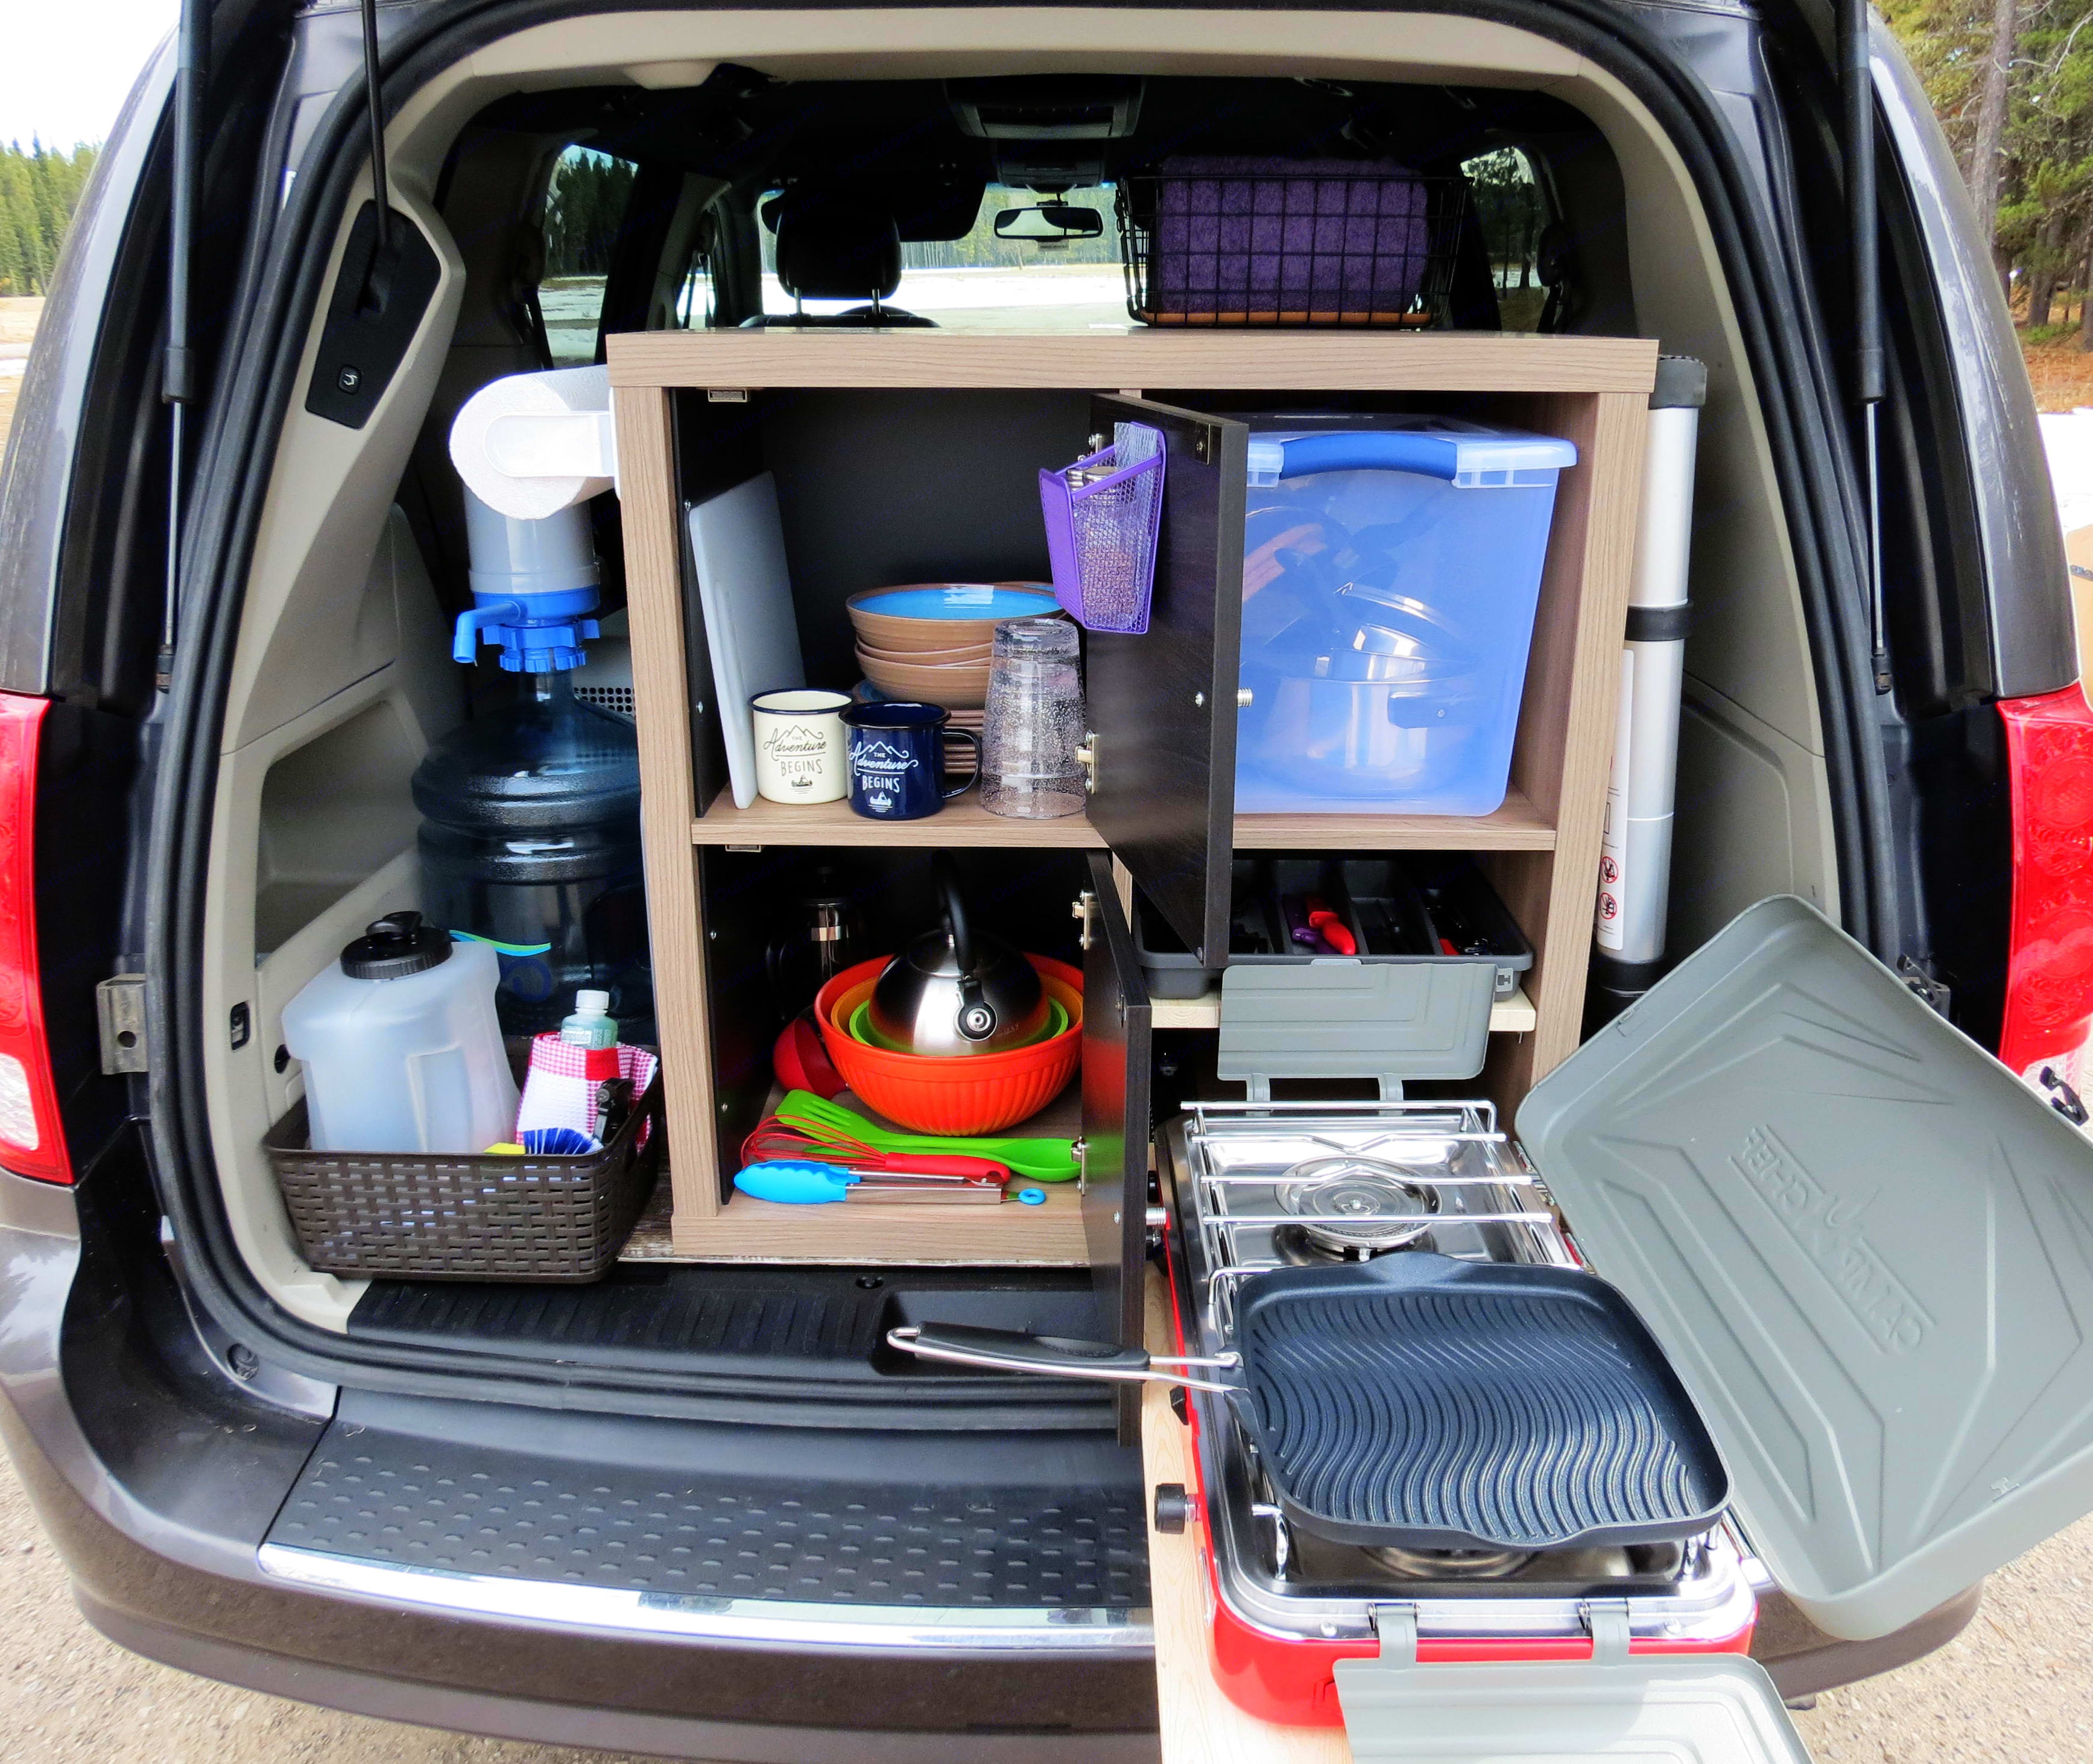 All equipment is included for free. Dodge Grand Caravan 2014